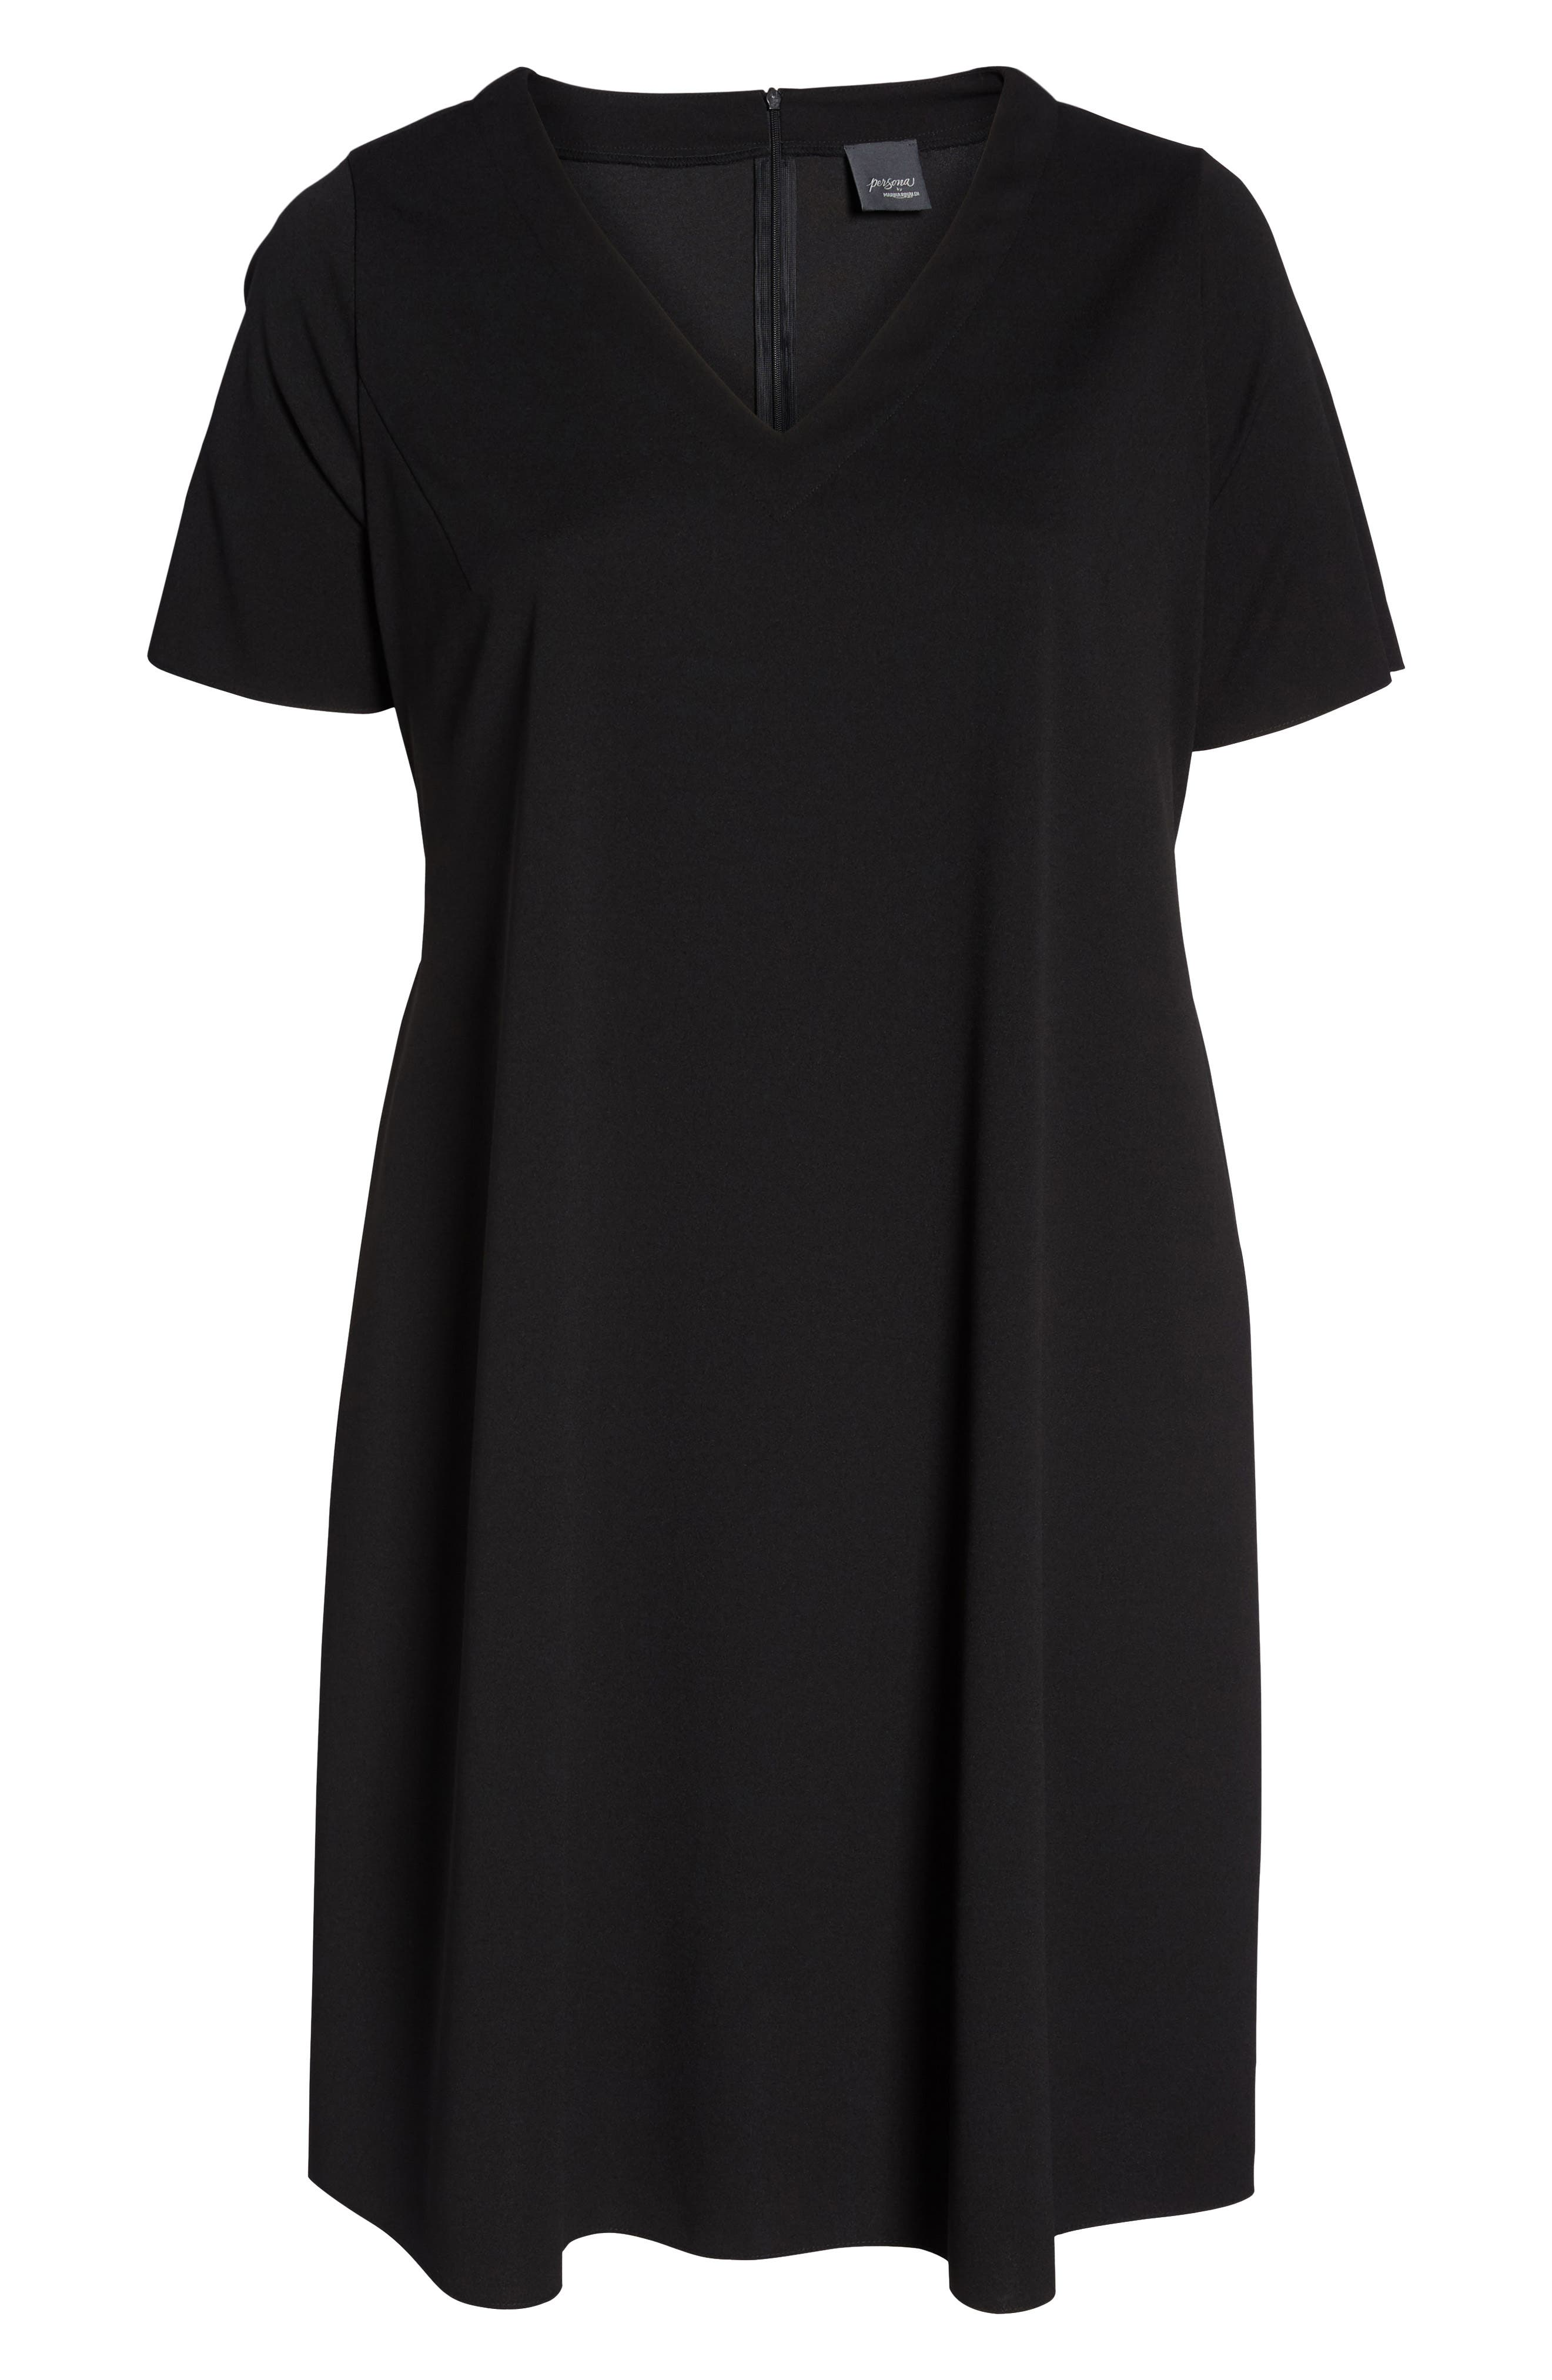 Short Sleeve Knit Dress,                             Alternate thumbnail 6, color,                             001